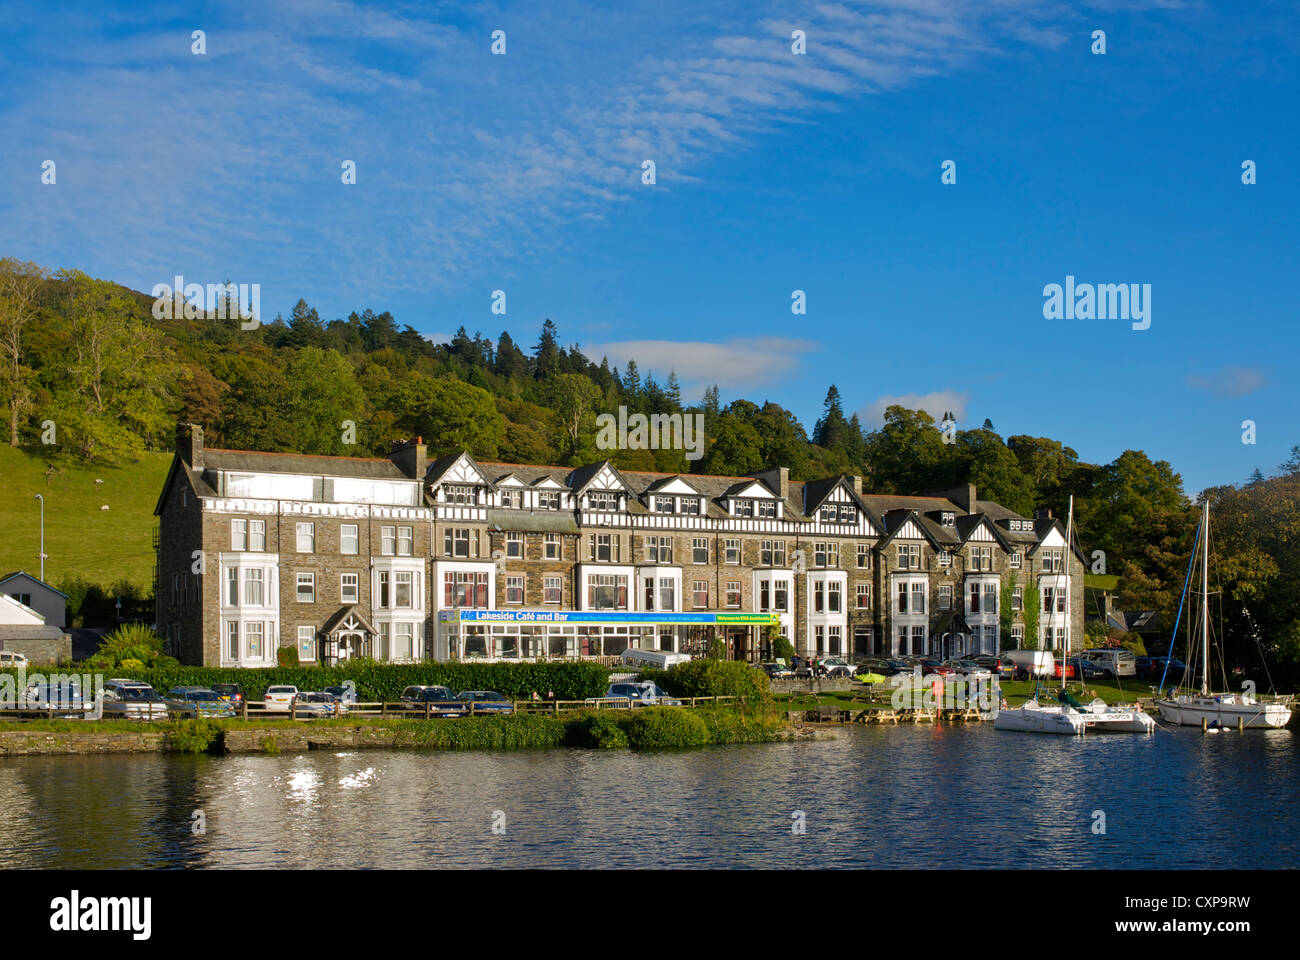 Ambleside Youth Hostel at Waterhead, overlooking Lake Windermere, Lake District National Park, Cumbria, England - Stock Image